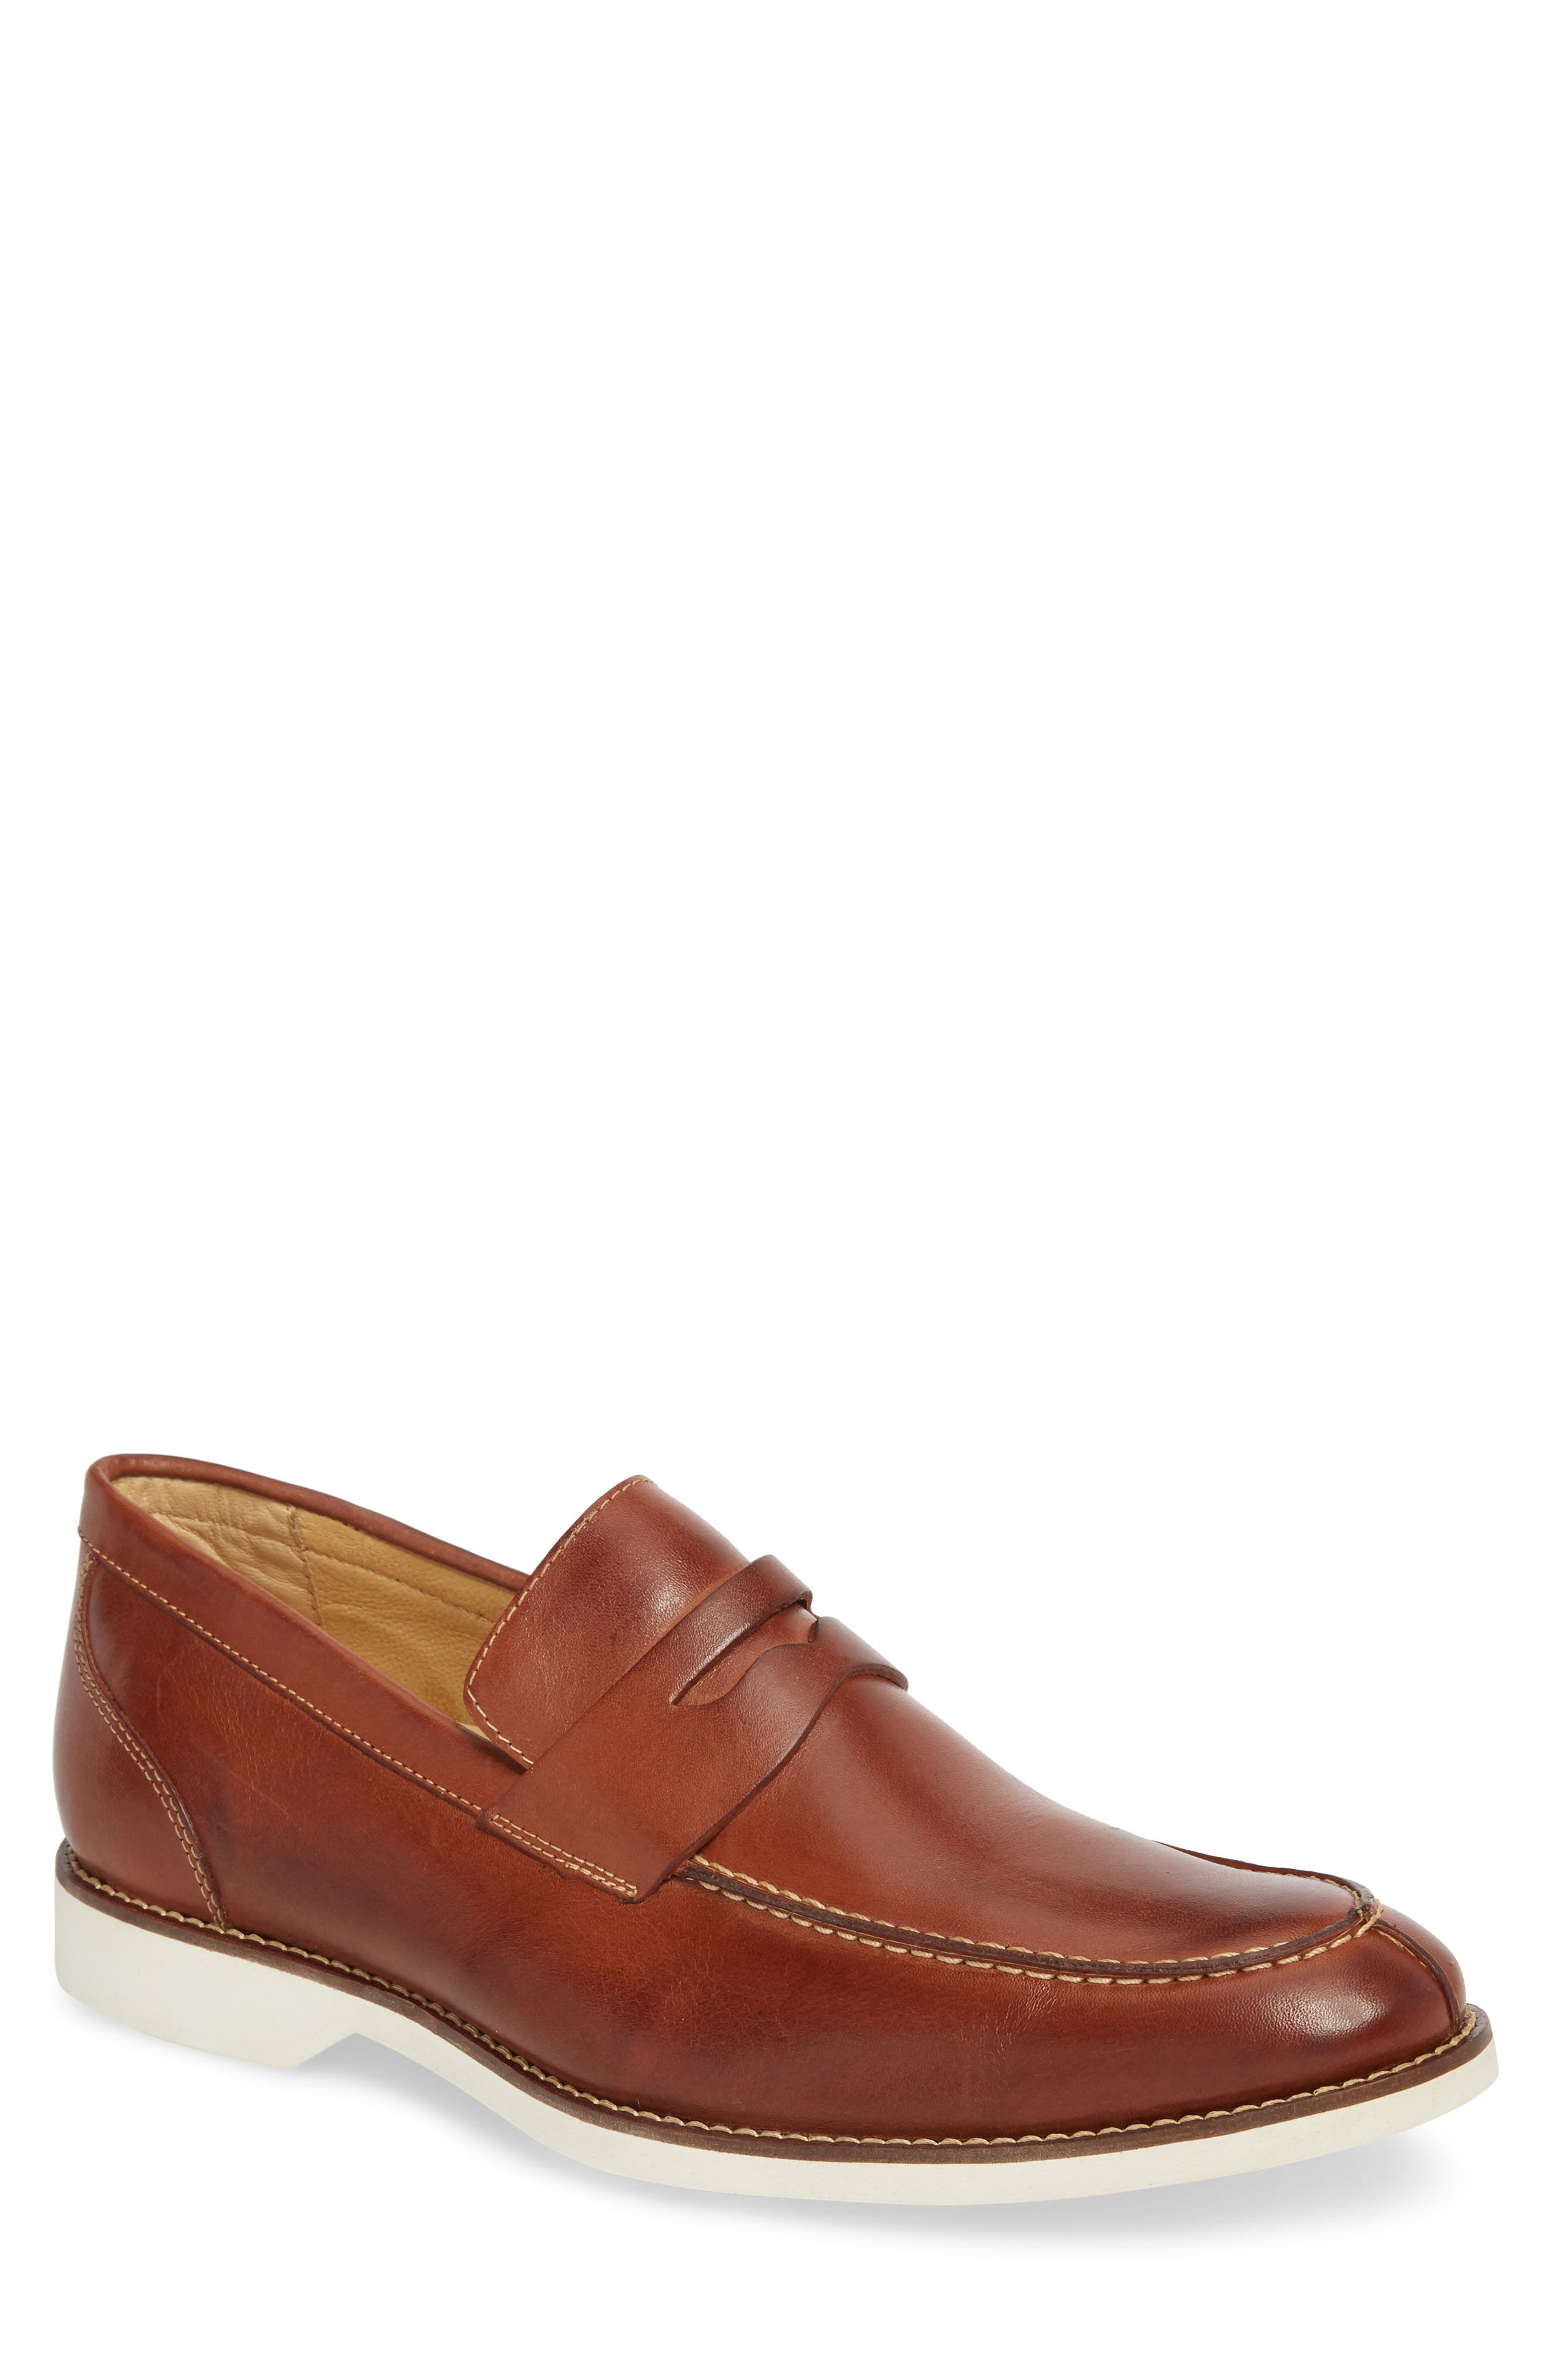 Senador Penny Loafer,                         Main,                         color, Touch Havana Leather